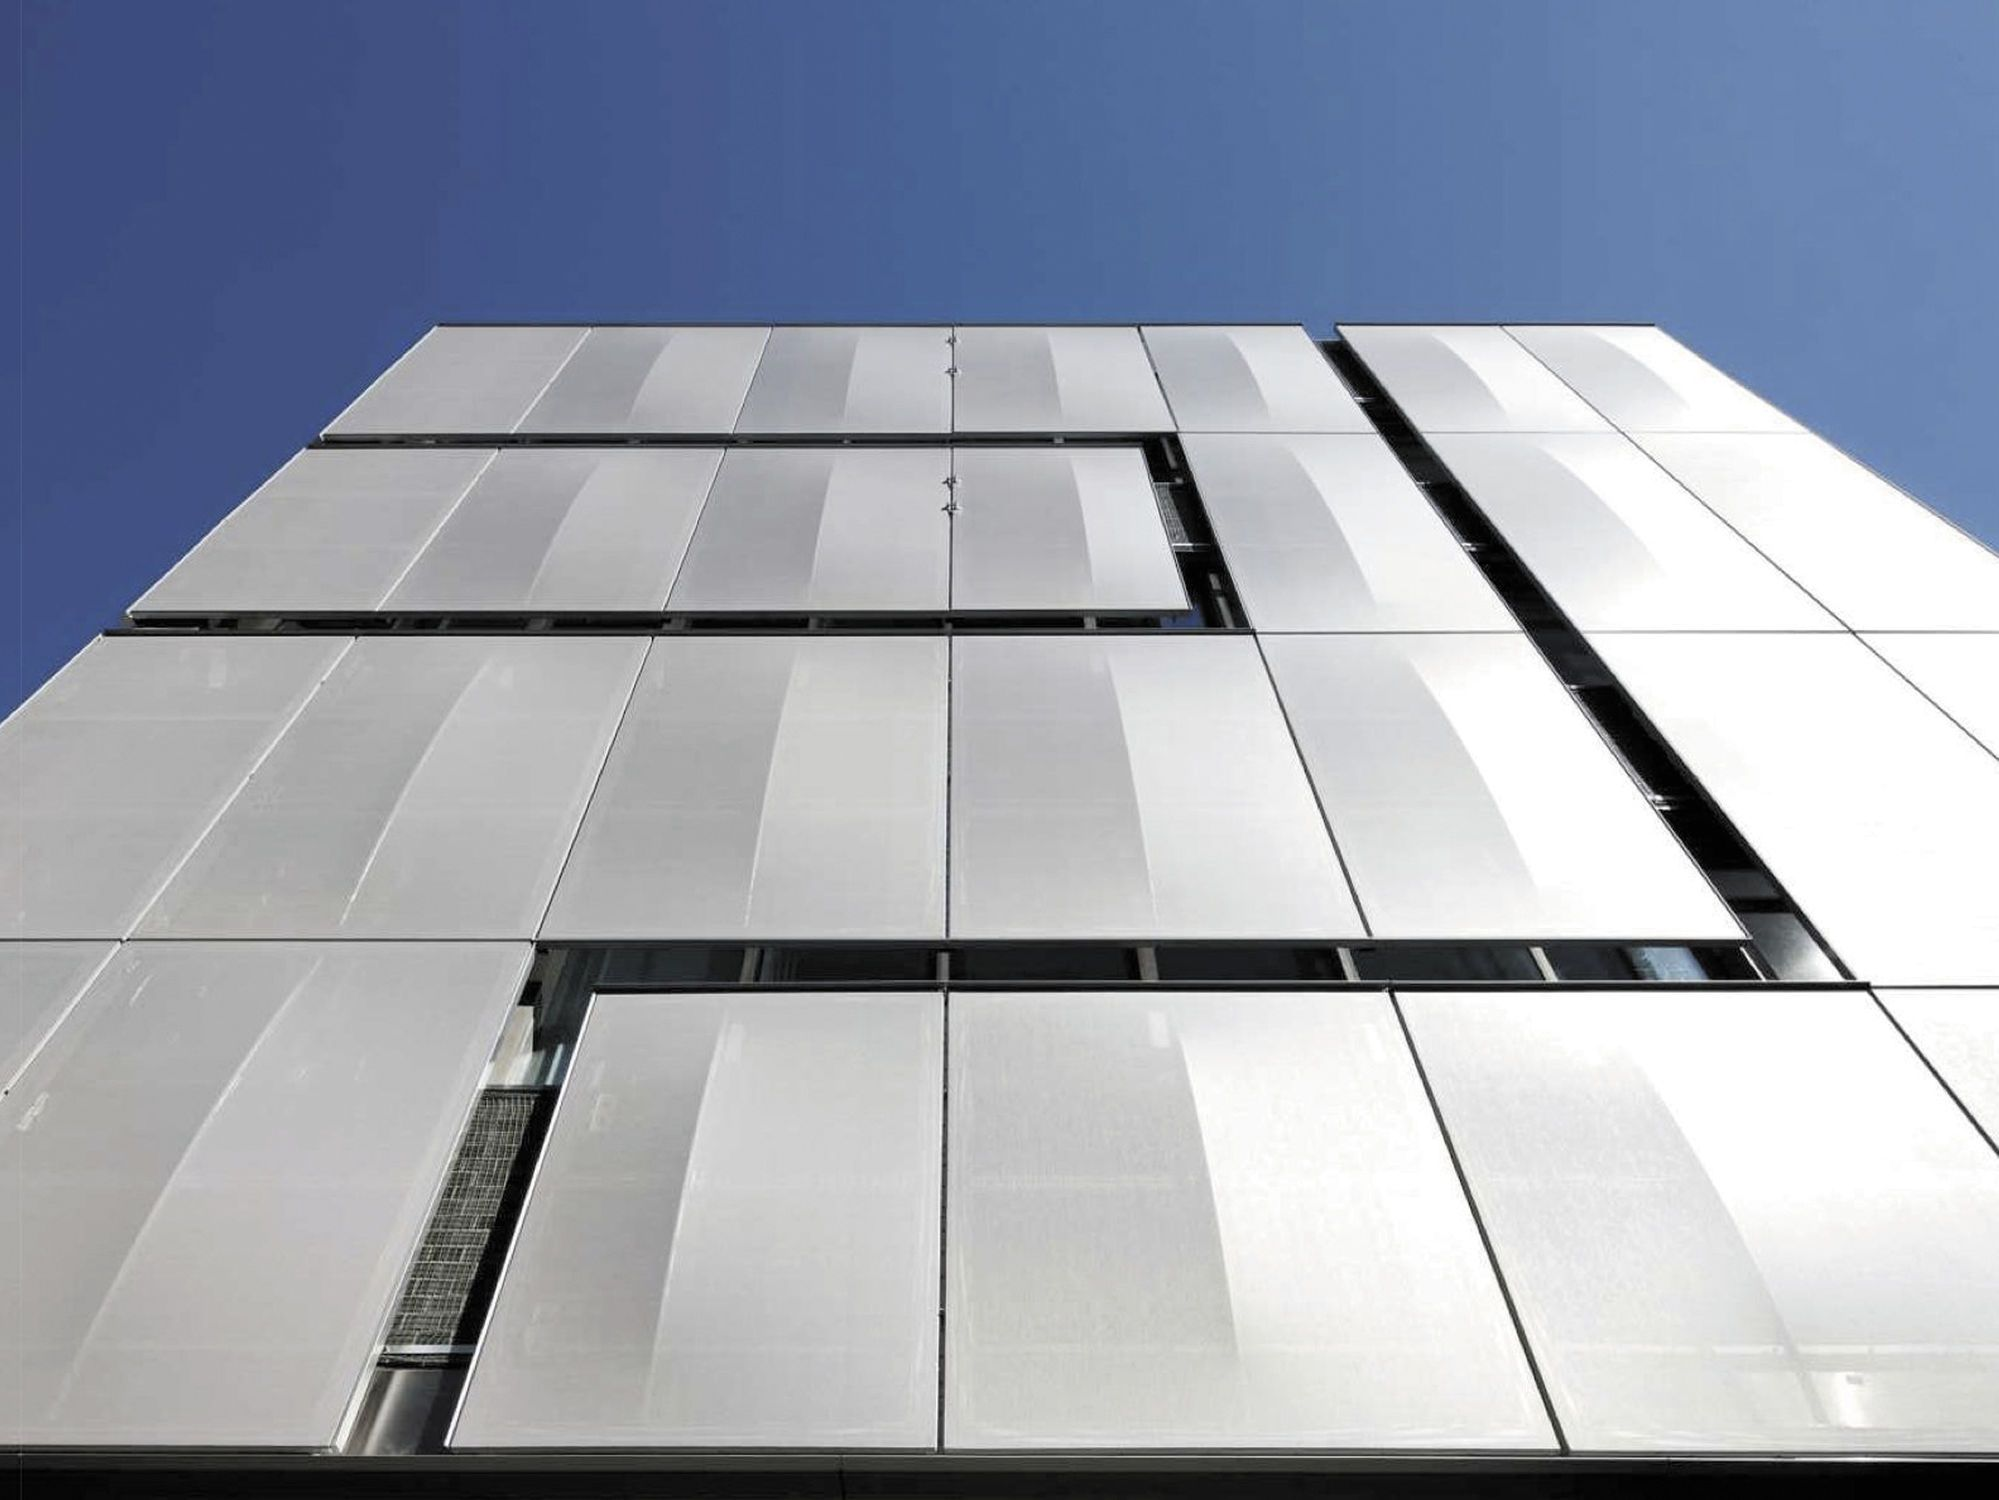 Aluminium Curtain Wall Facades : Aluminium profile for fabric curtain wall ts archi